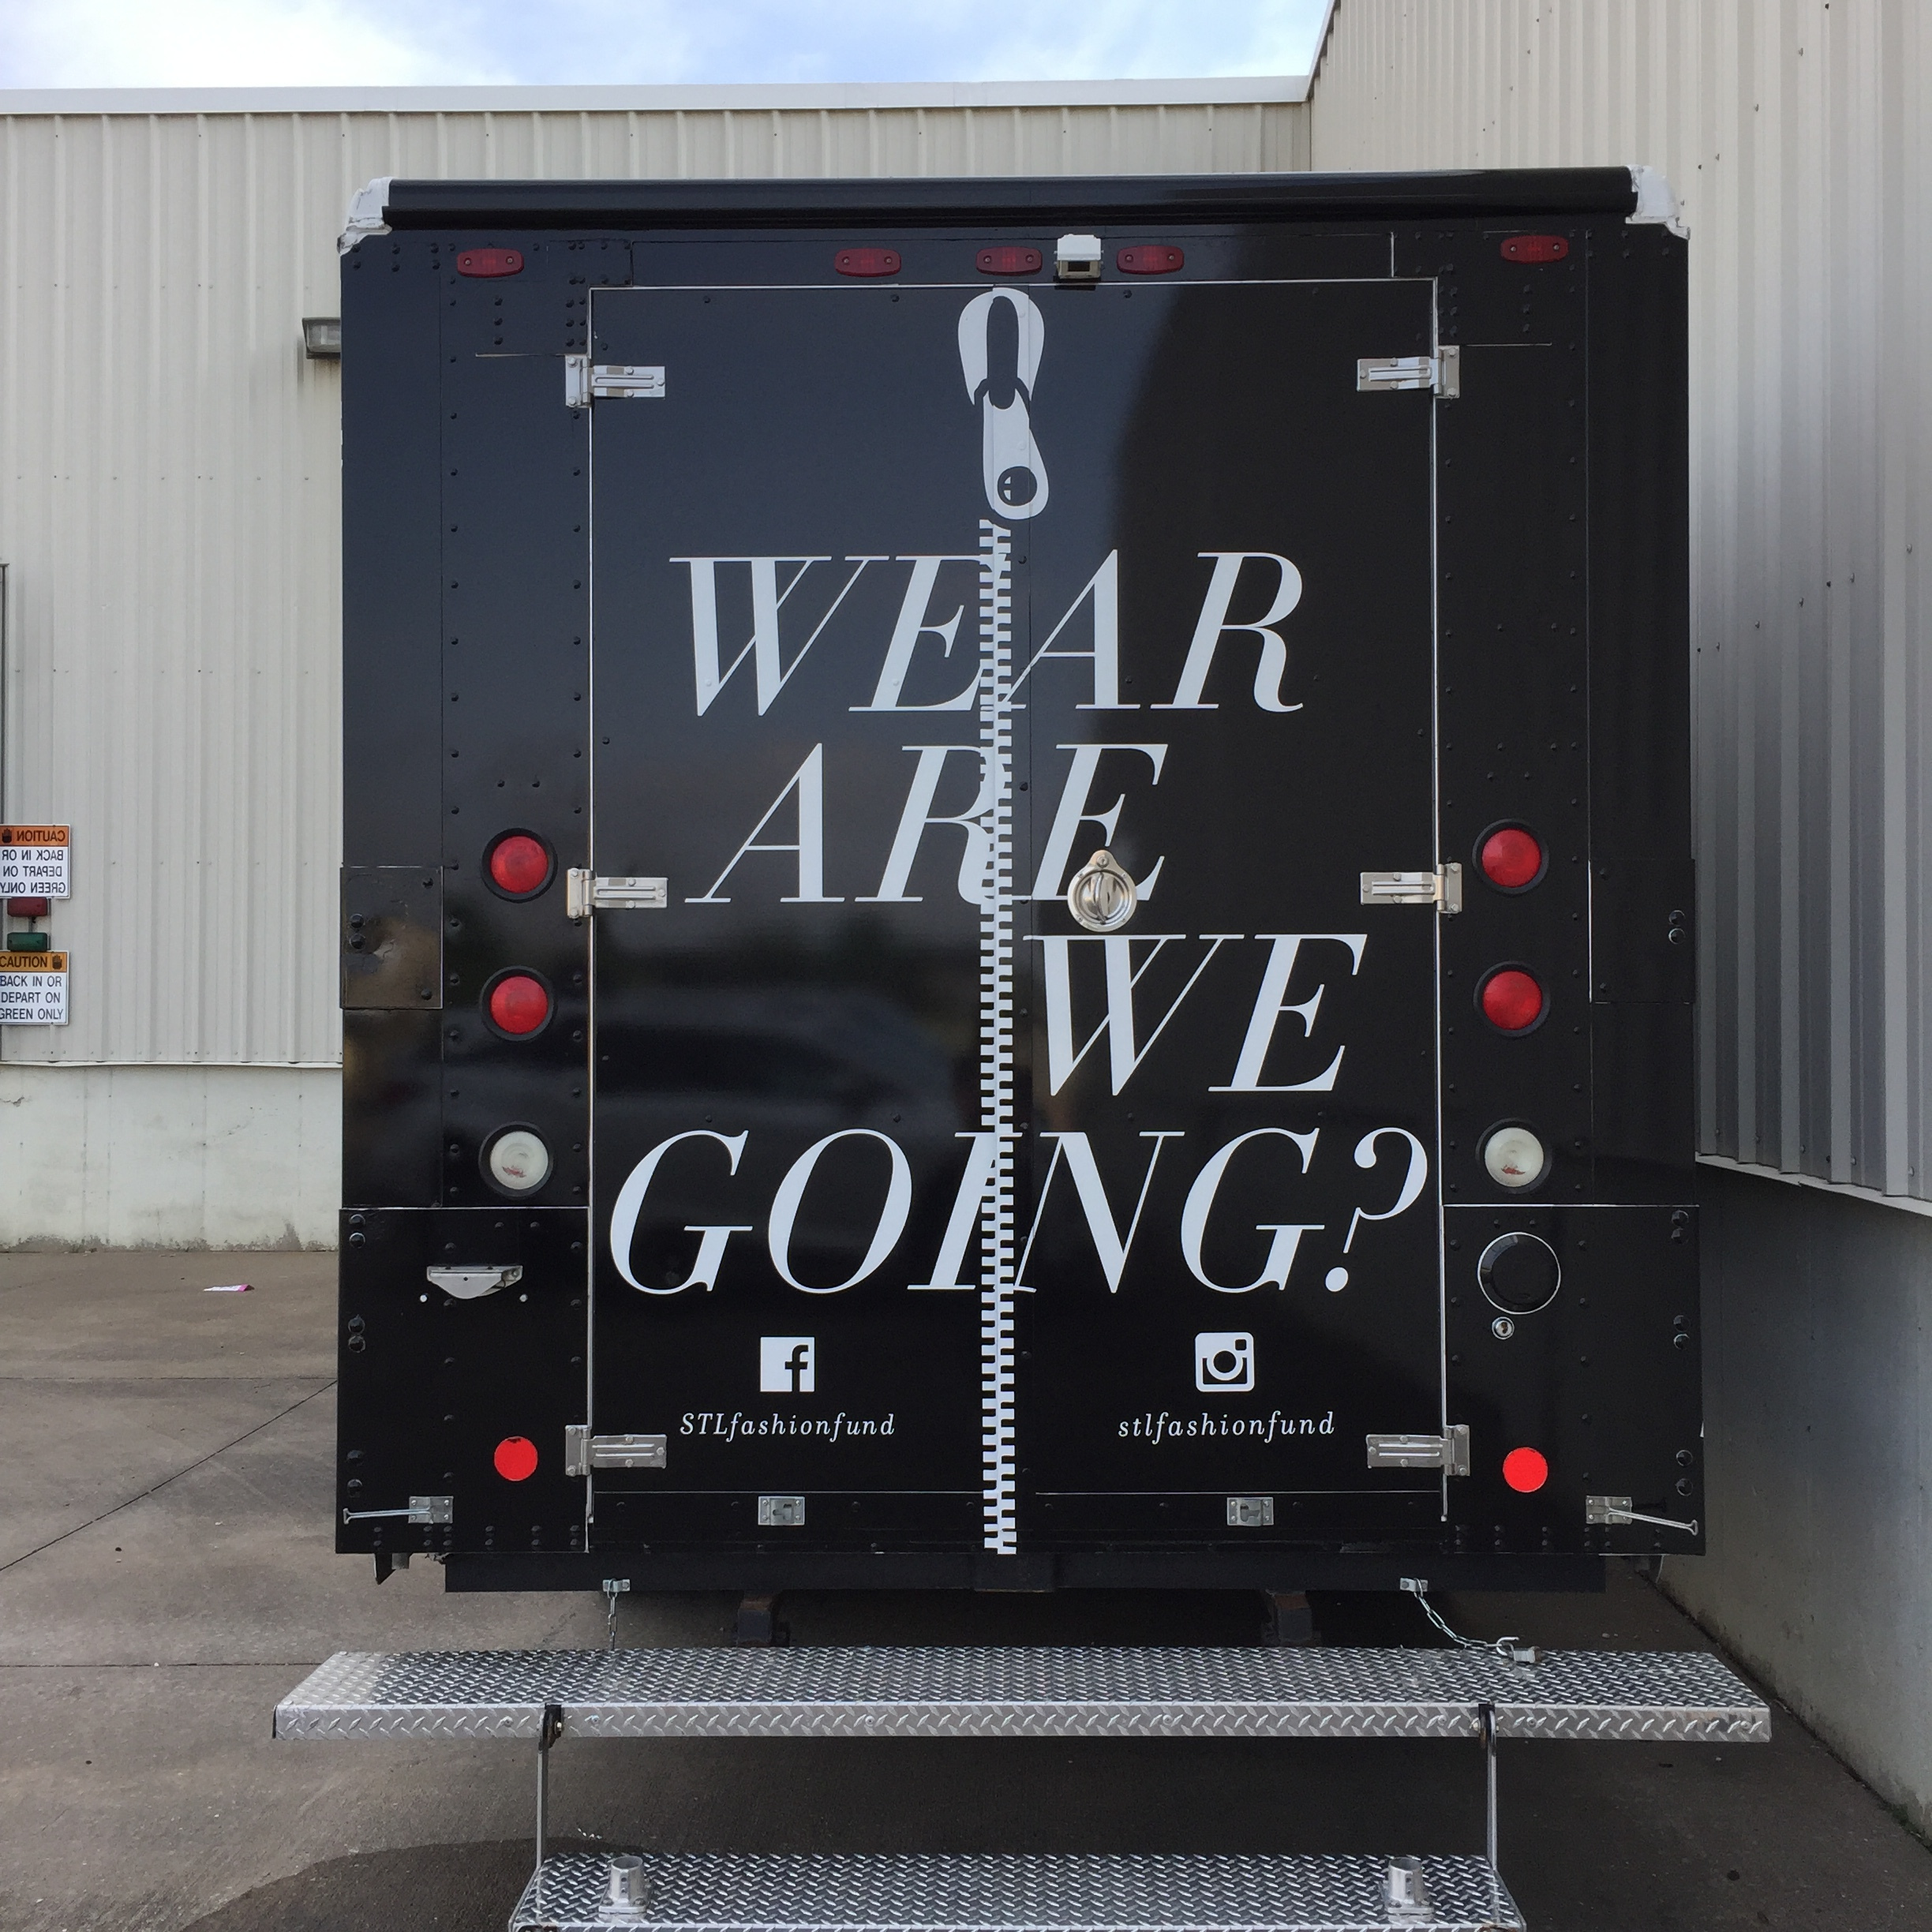 Please visit our events page [hyperlink] for up-to-the-minute information about where you can find the Fashion Truck!